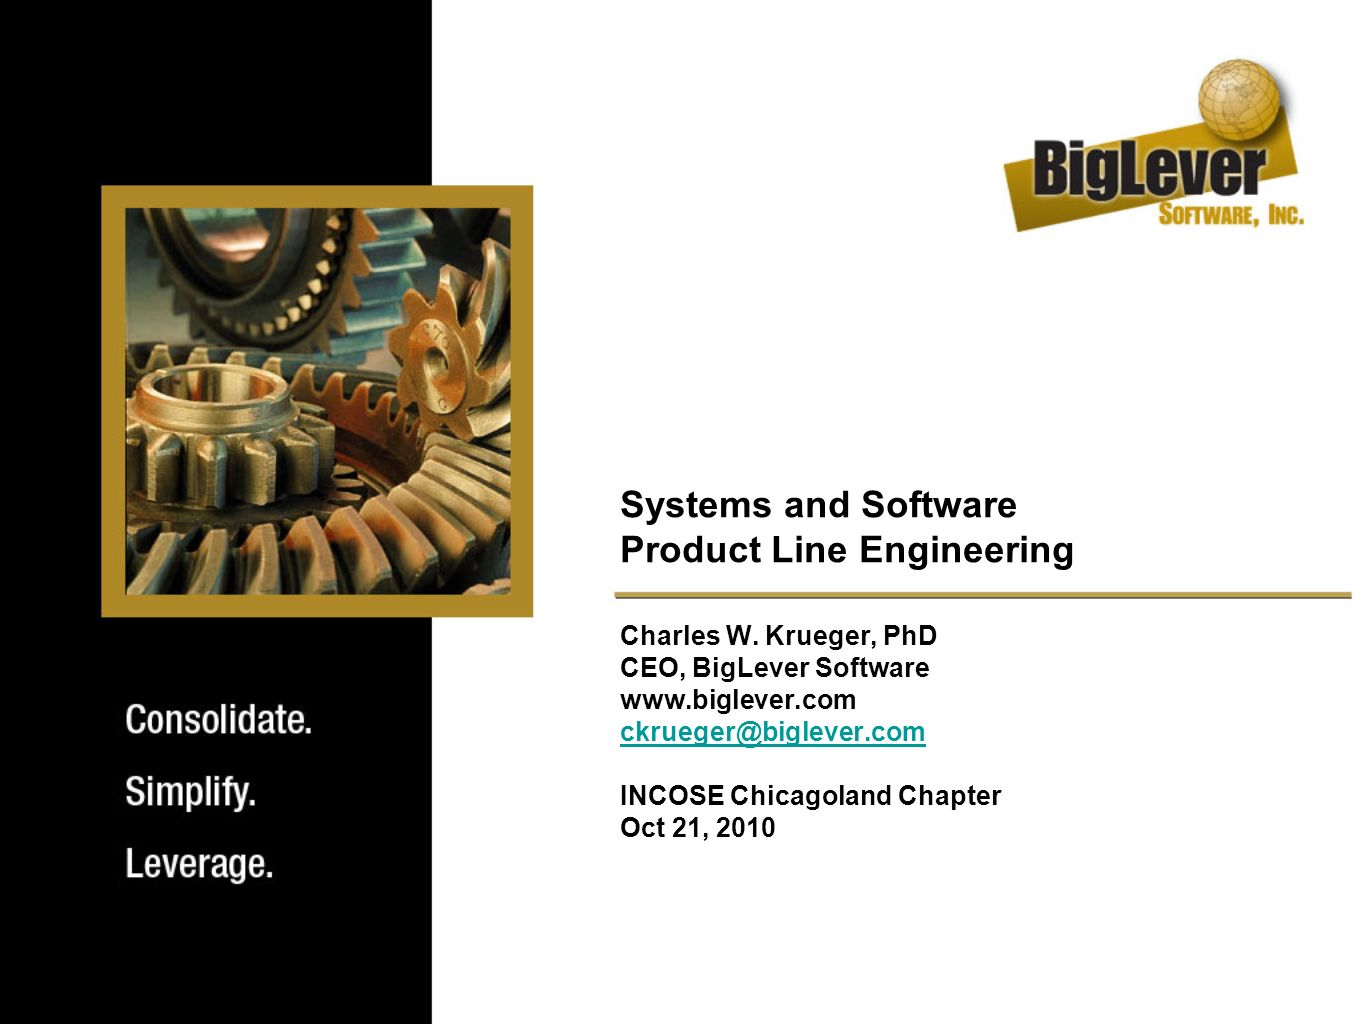 Systems and Software Product Line Engineering